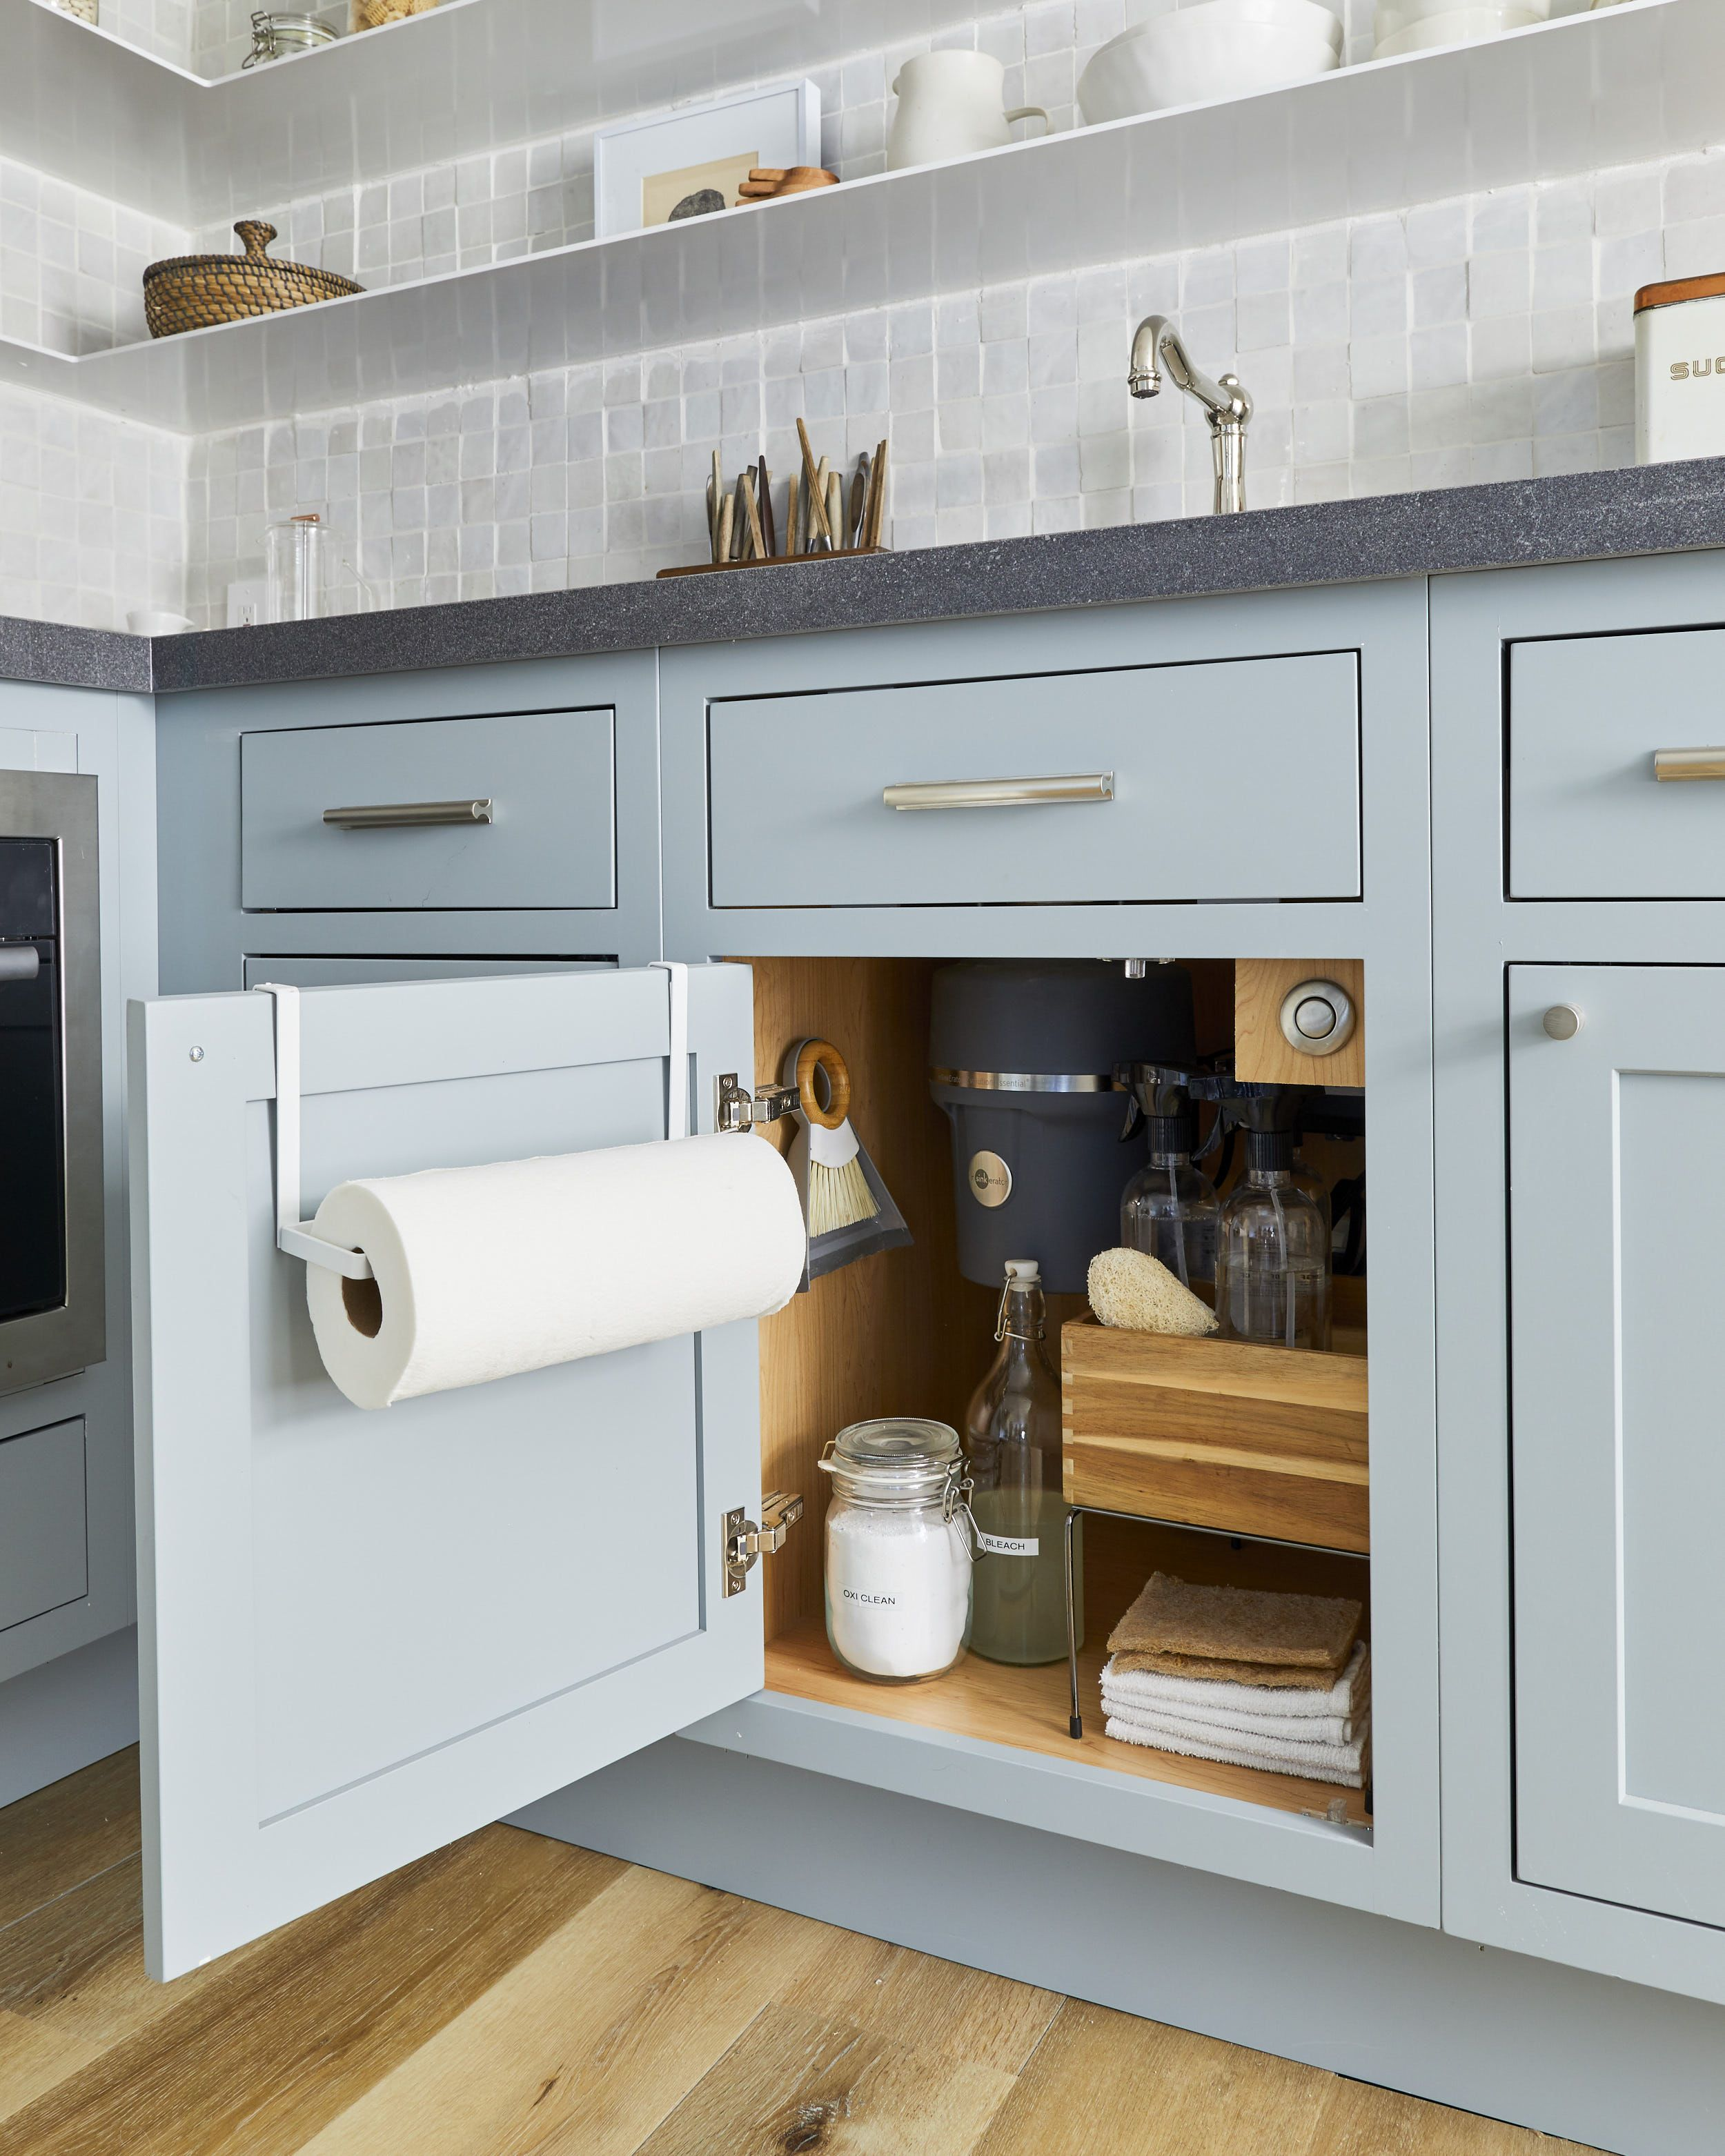 How To Design A 49 Square Foot Tiny Kitchen With Tons Of Smart